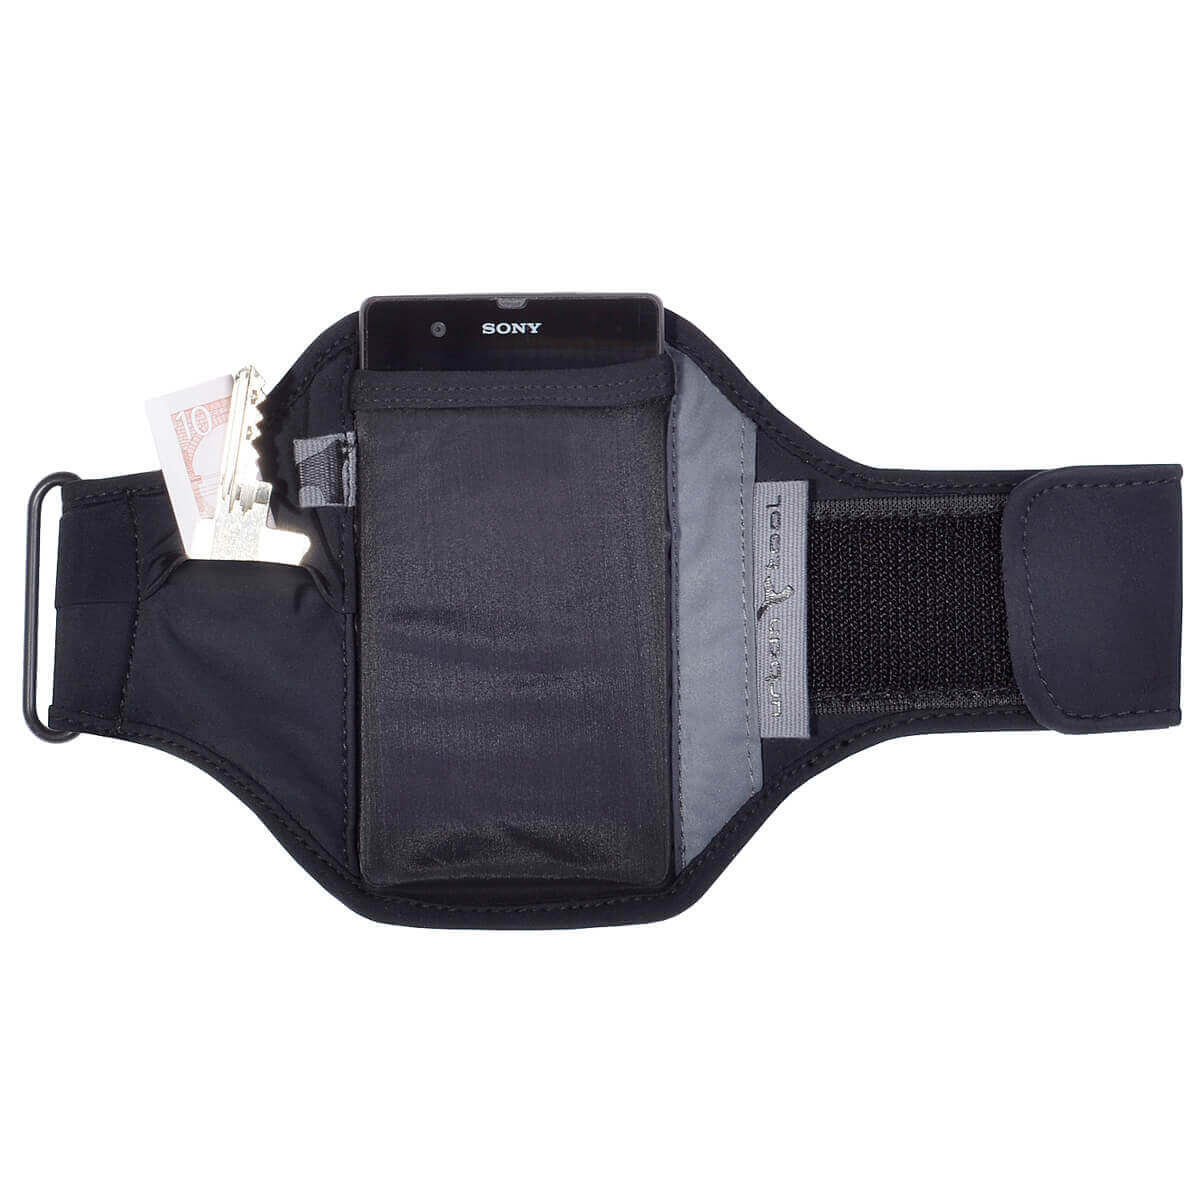 sports armband black filled